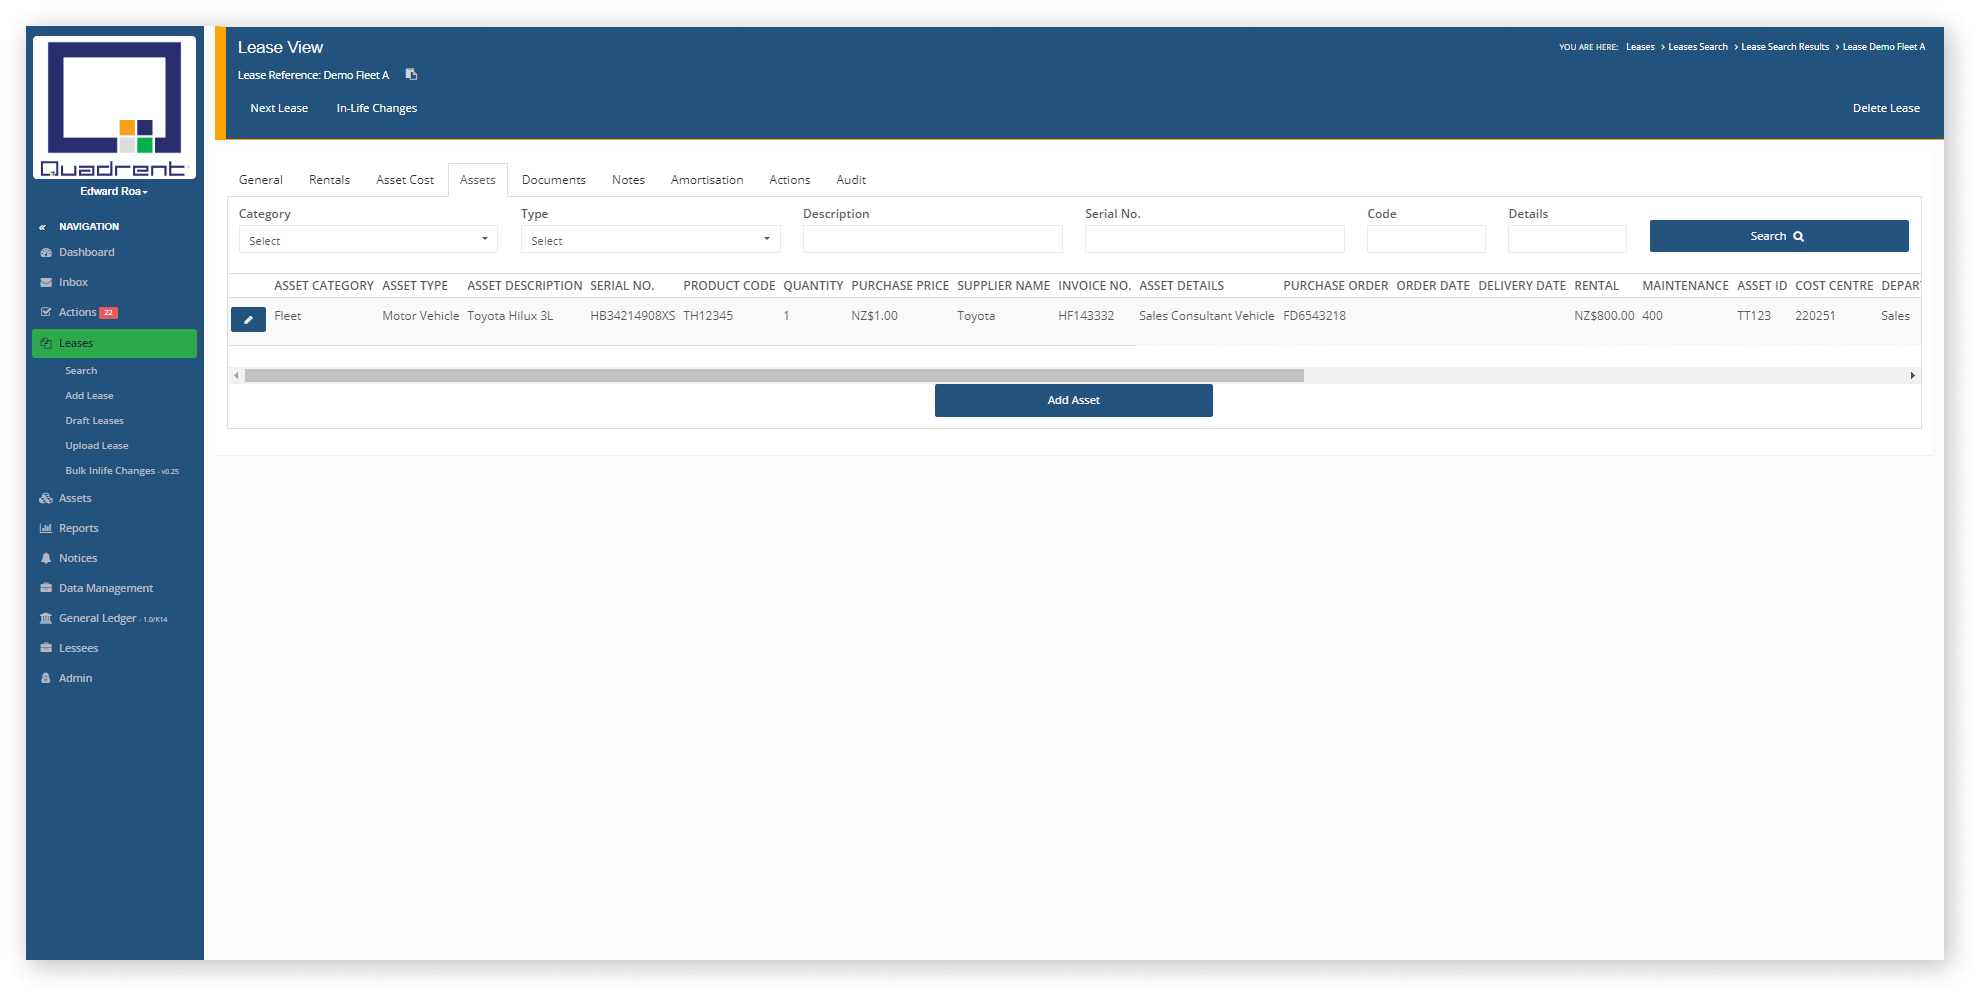 Asset Tab in lease view